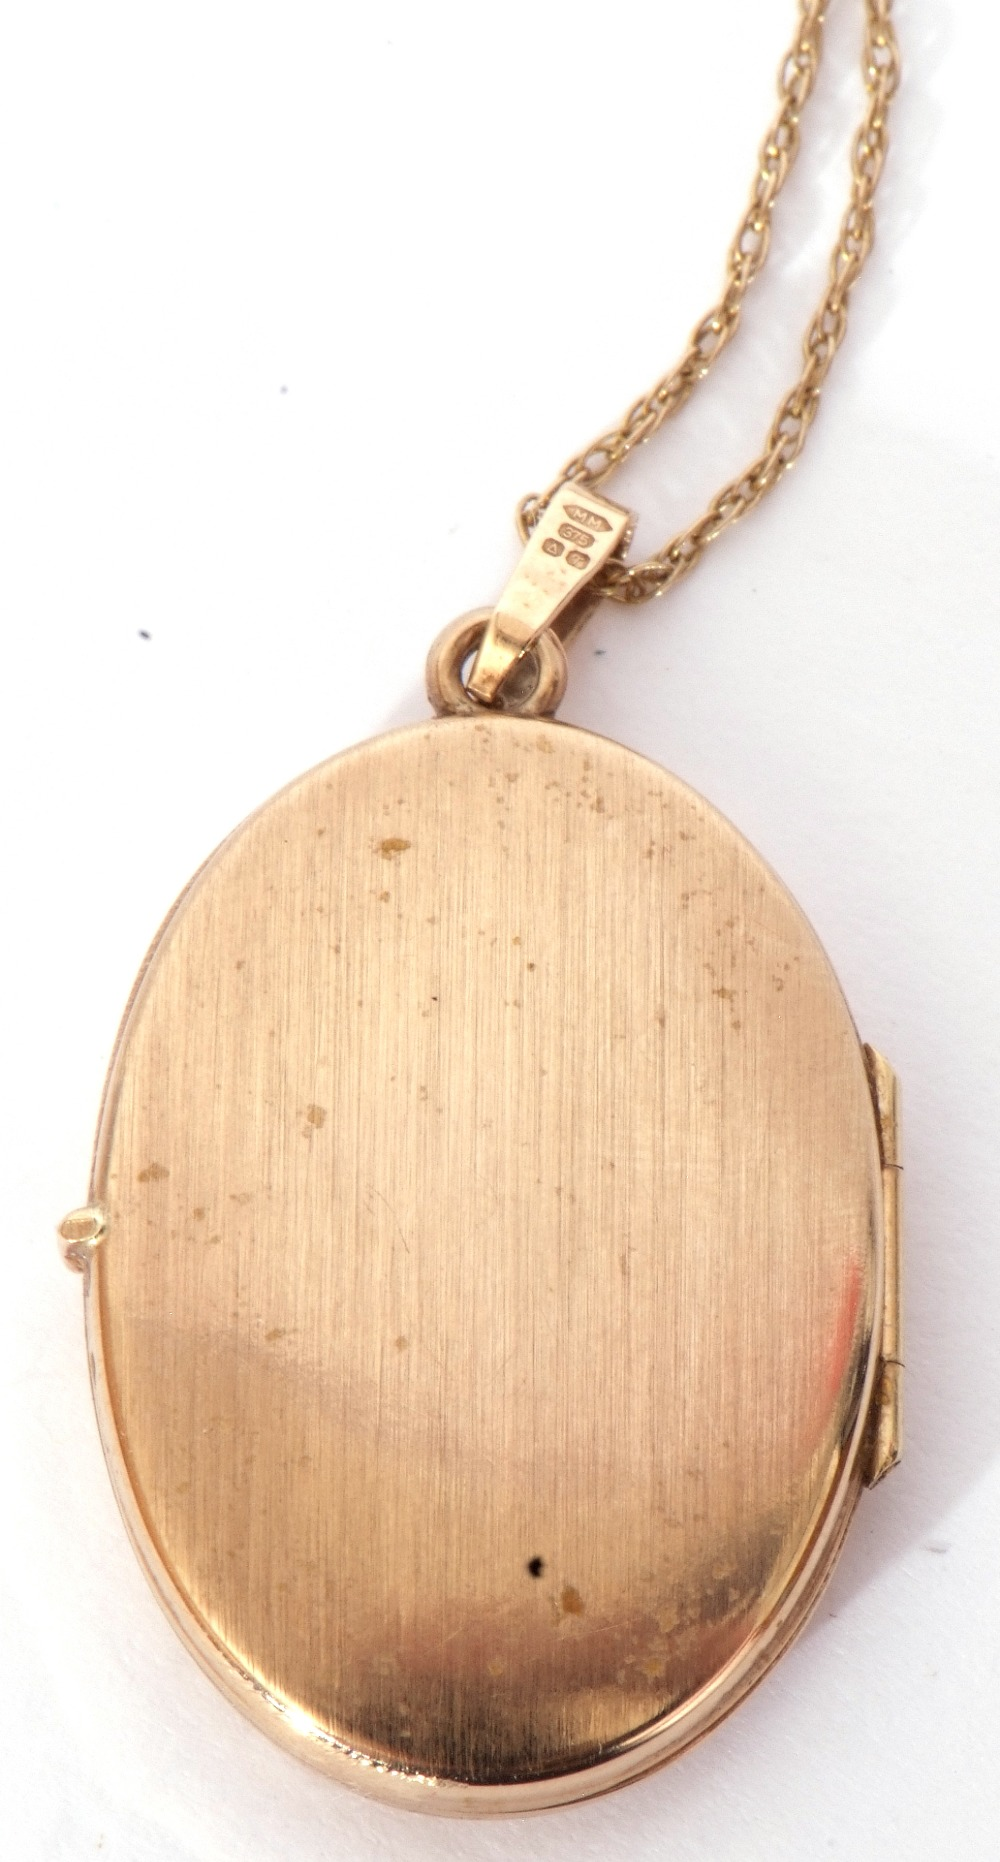 Modern oval yellow metal hinged locket, the front with engraved detail, burnished verso, suspended - Image 4 of 4